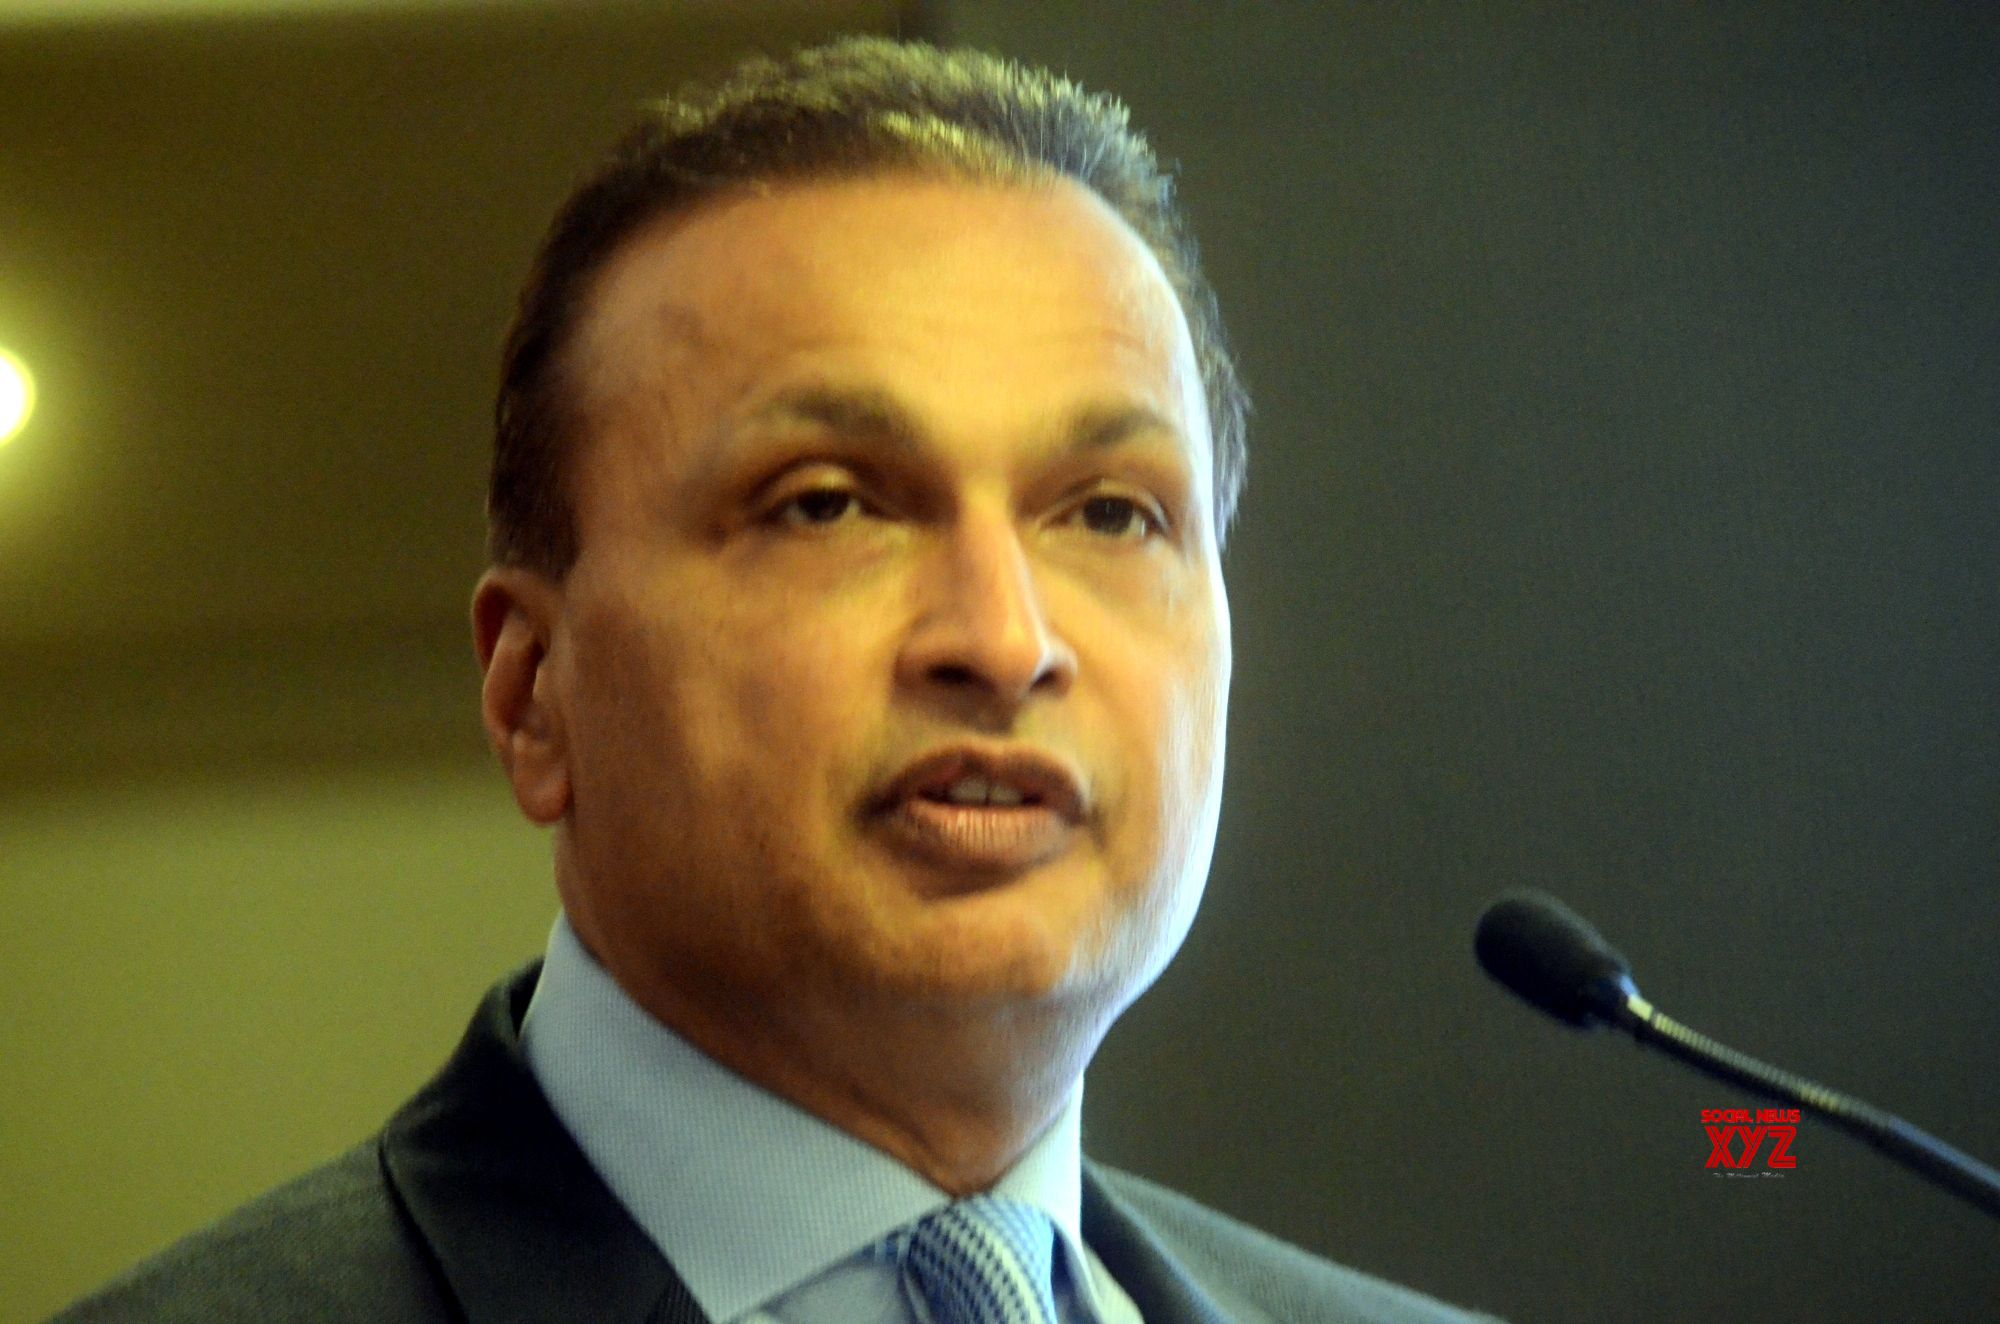 Reliance General Insurance files for IPO with SEBI